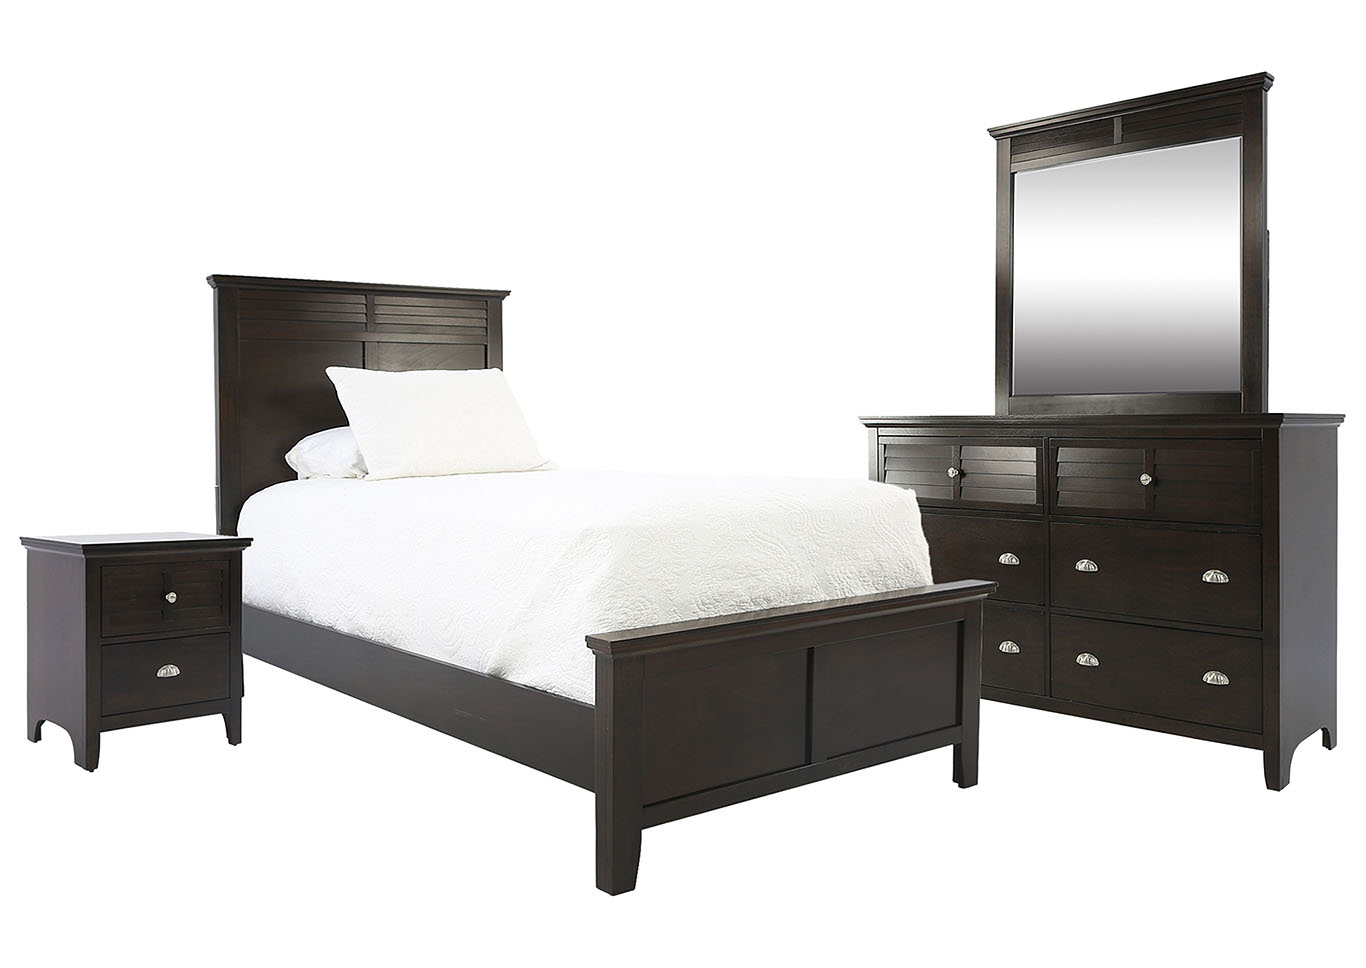 SPENCER BROWN TWIN  BEDROOM SET,LIFESTYLE FURNITURE